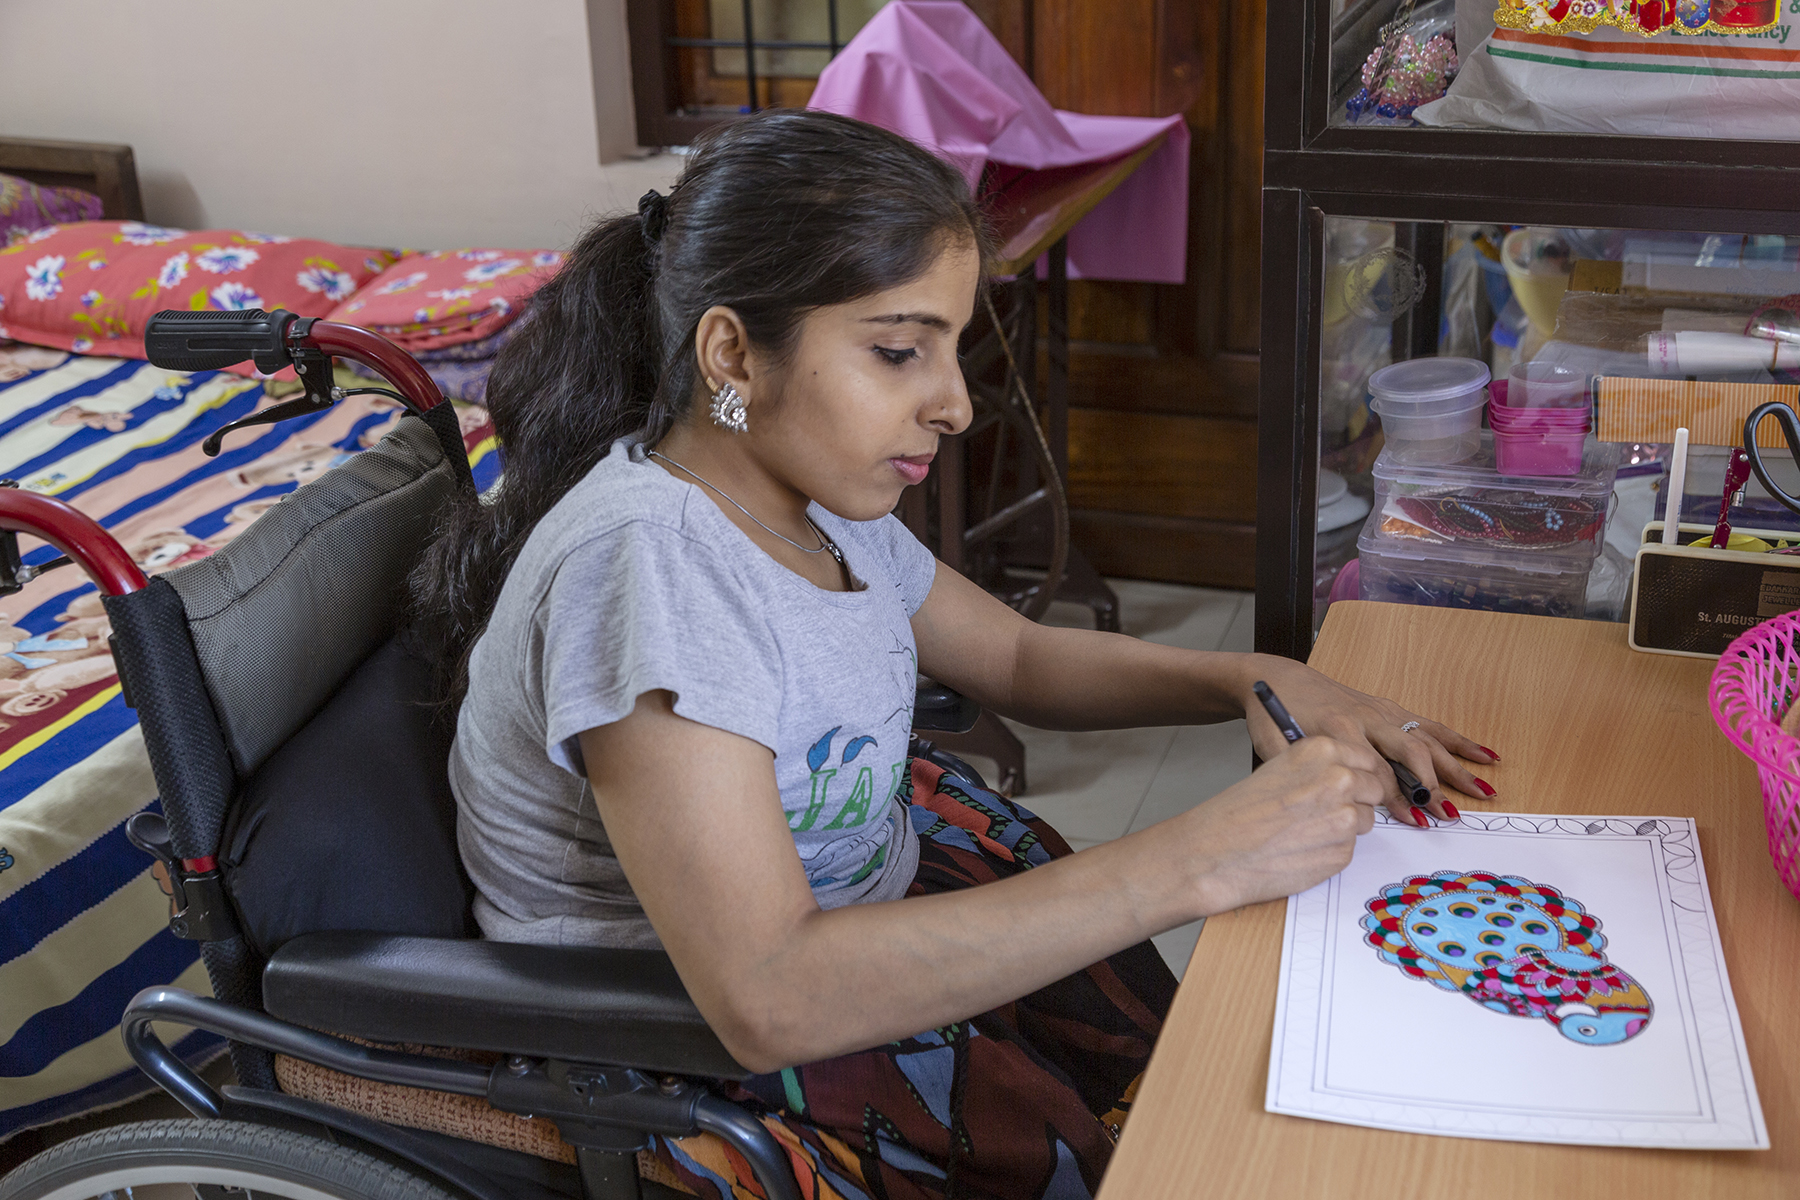 Anju Rani sits in her wheelchair behind a table with a beige wooden finish. She wears a grey short-sleeved T-shirt, a multi-coloured skirt, a silver chain and silver ear-studs. She holds a black pen to a sheet of paper that has the drawing of a stylised parrot painted in red, blue, orange and pink. She is outlining a decorative black border for the painting.